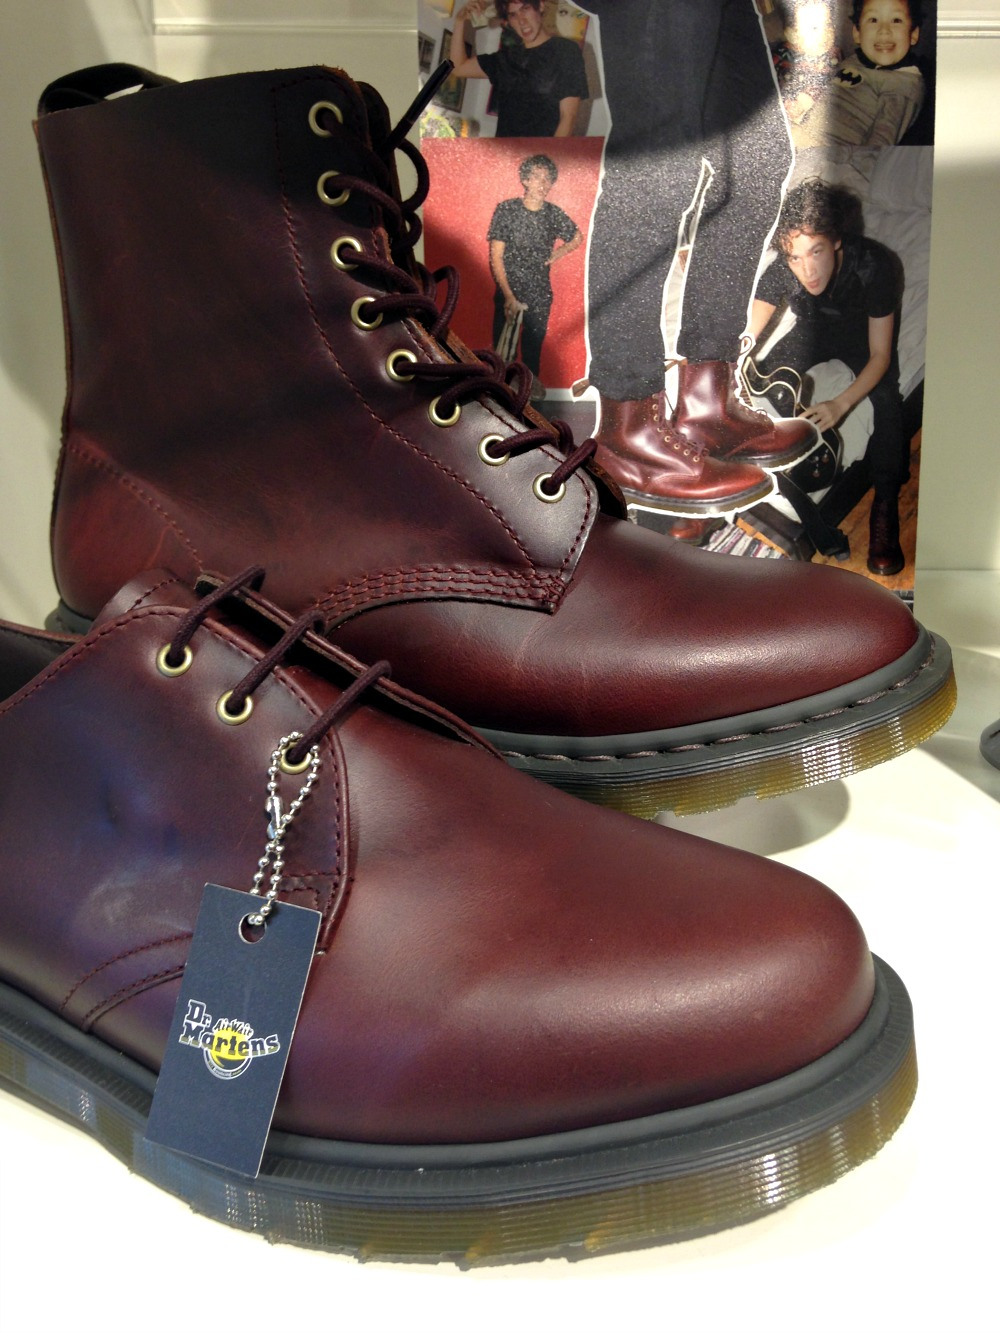 Dr Martens boots in Broadmead Bristol